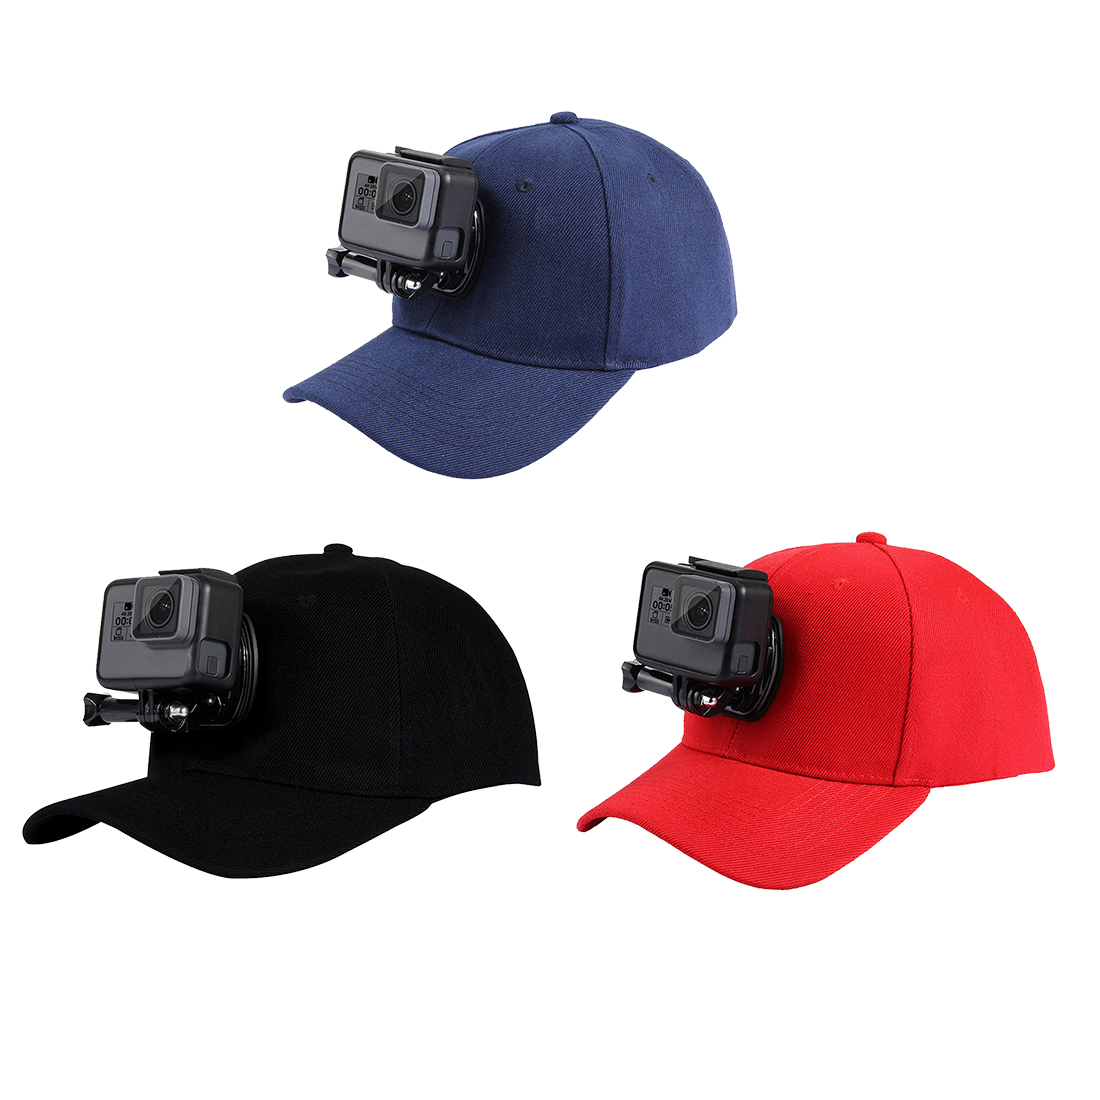 For Gopro Accessory Adjustable Canvas Sun Hat Cap for Hero 5 4 3 SJCAM SJ7 SJ6 M20 Eken H9 H9R H8 Pro Yi 4K Sport Action Camera for gopro accessories outdoor eva collecting box for sjcam sj4000 sj5000 sj5000x sj6 sj7 eken h9 h9r yi action camera